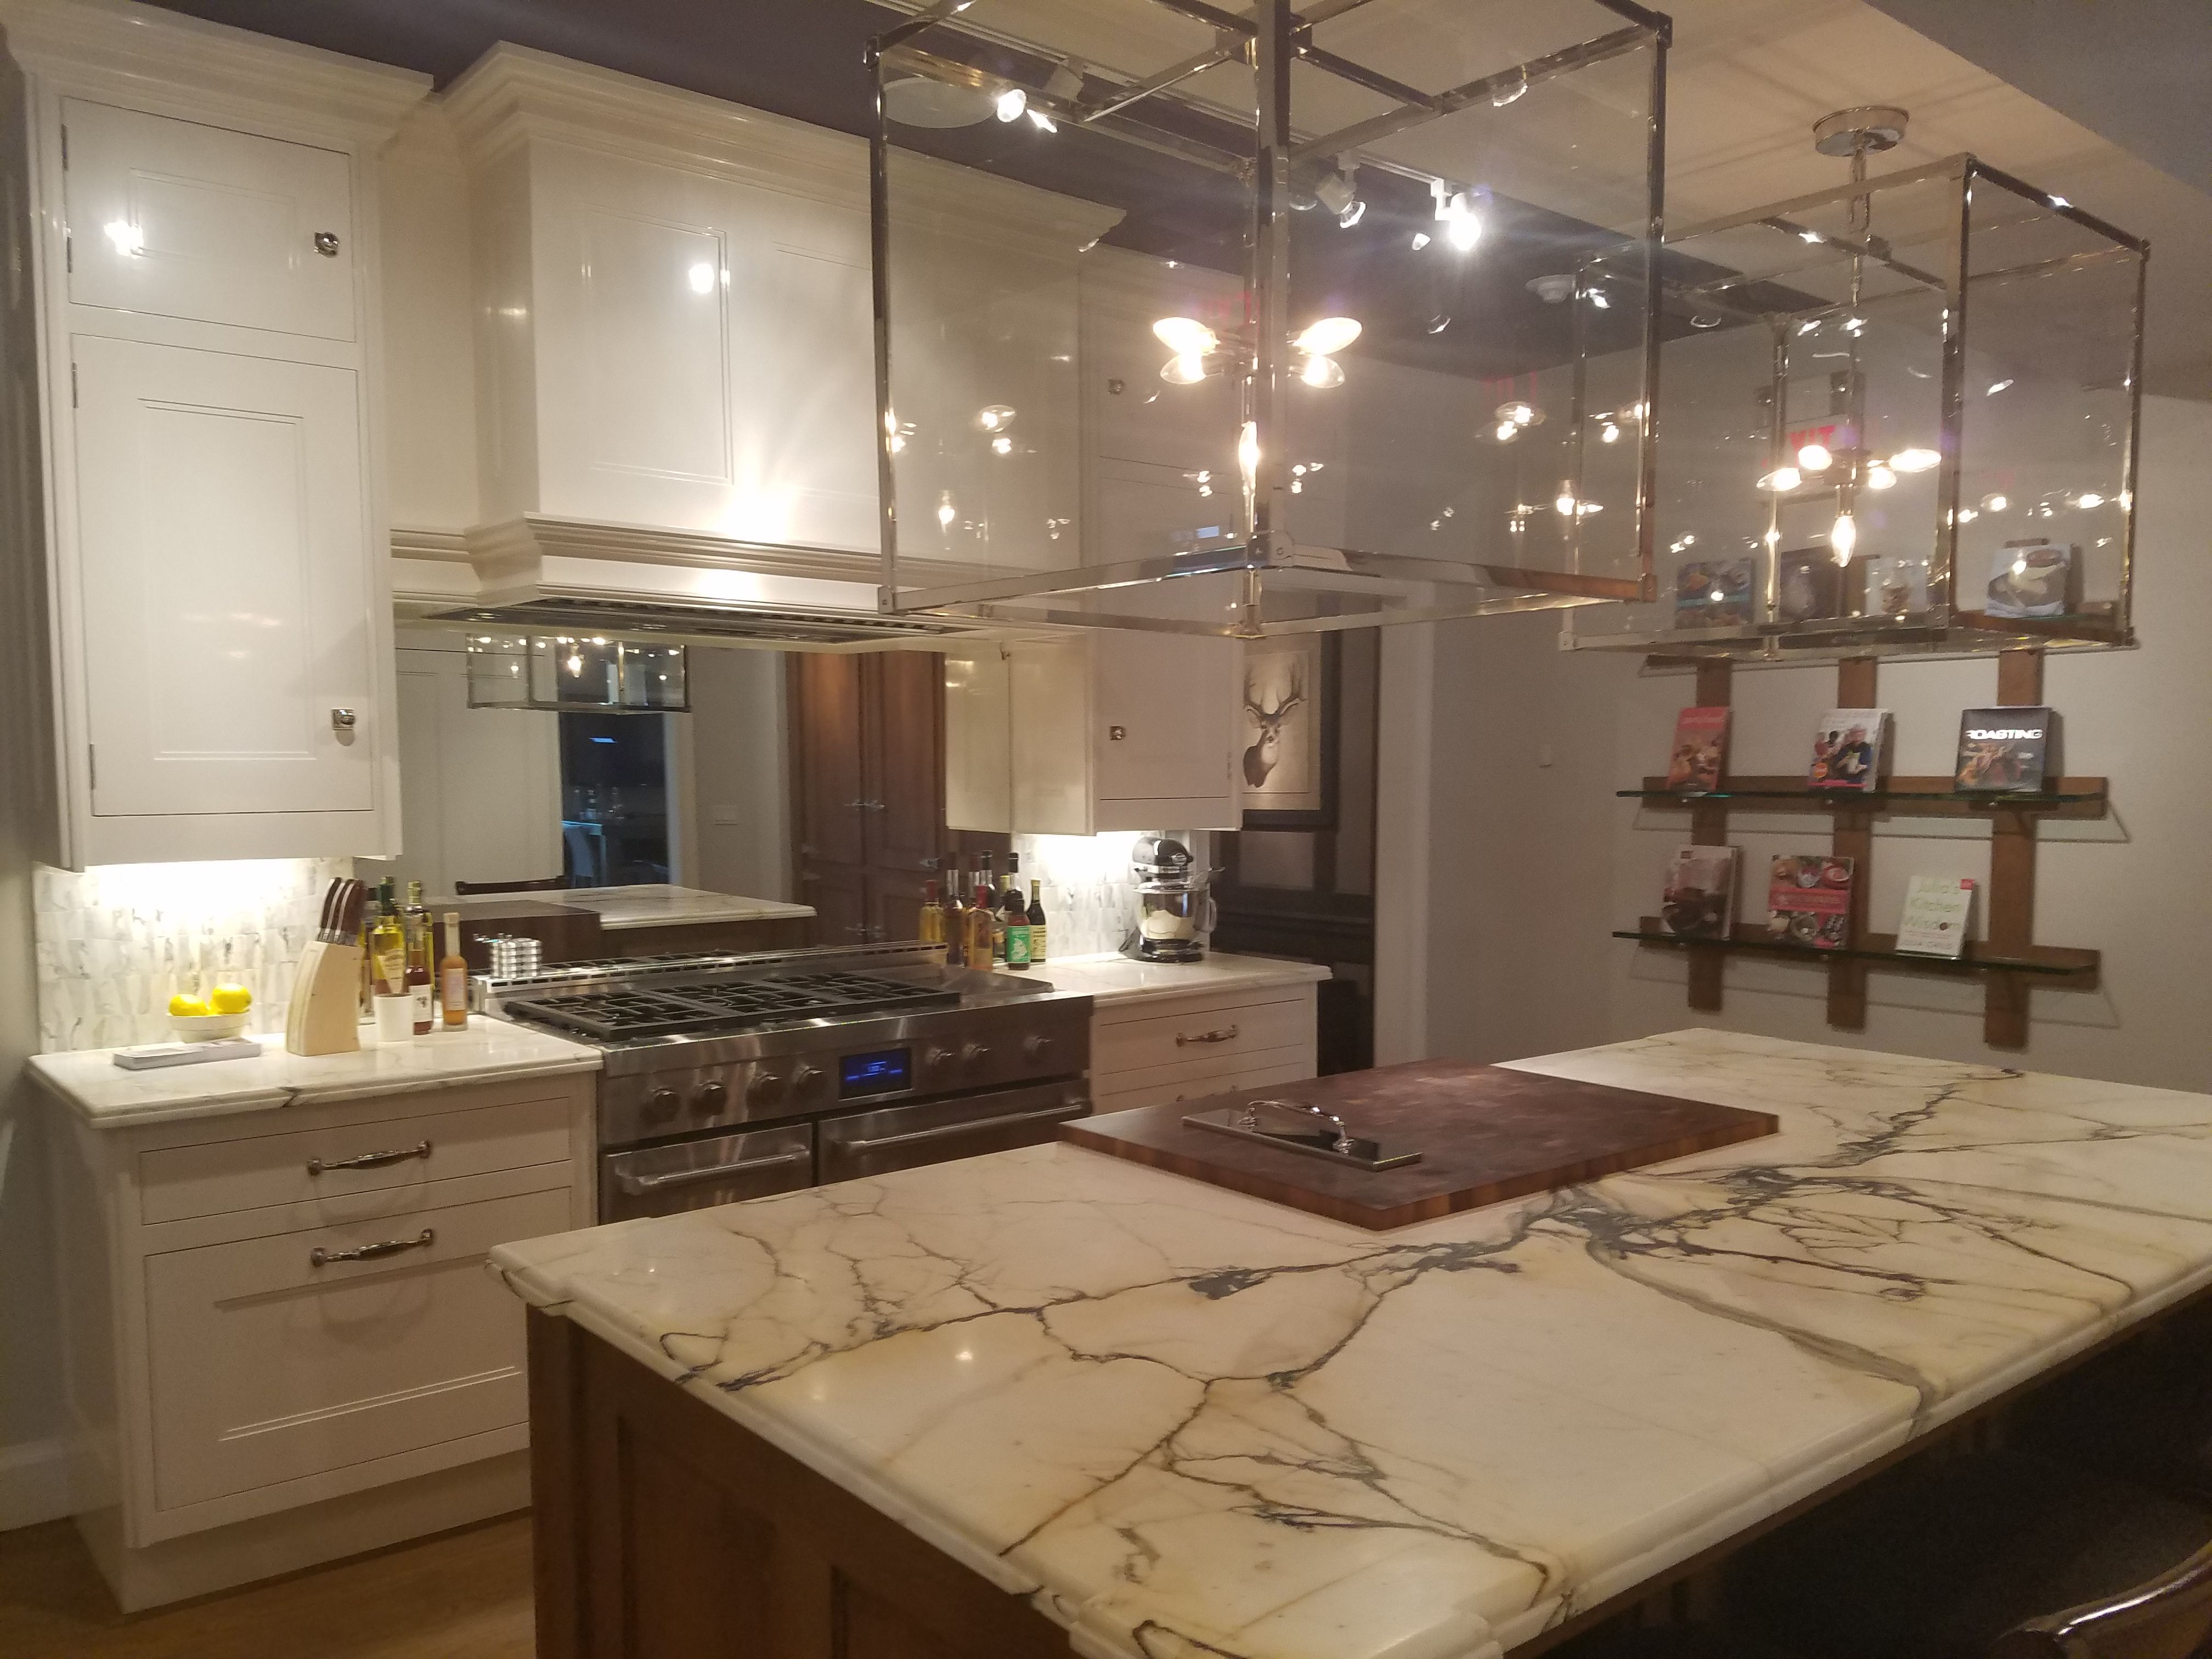 Cabinets refectory and lighting and built in stove fan kitchen